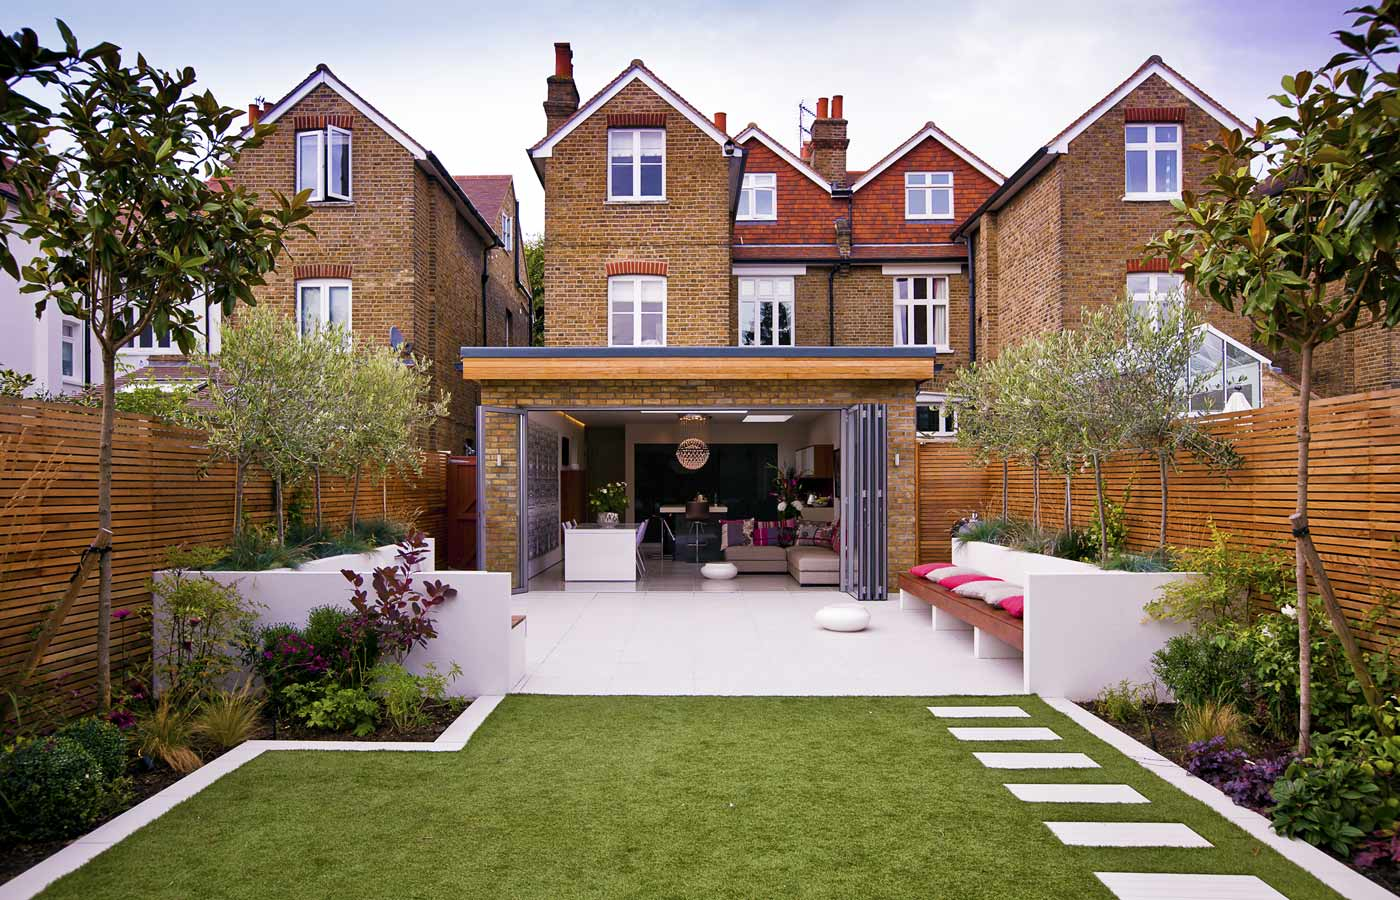 31 innovative landscape garden design west london for Landscape design london